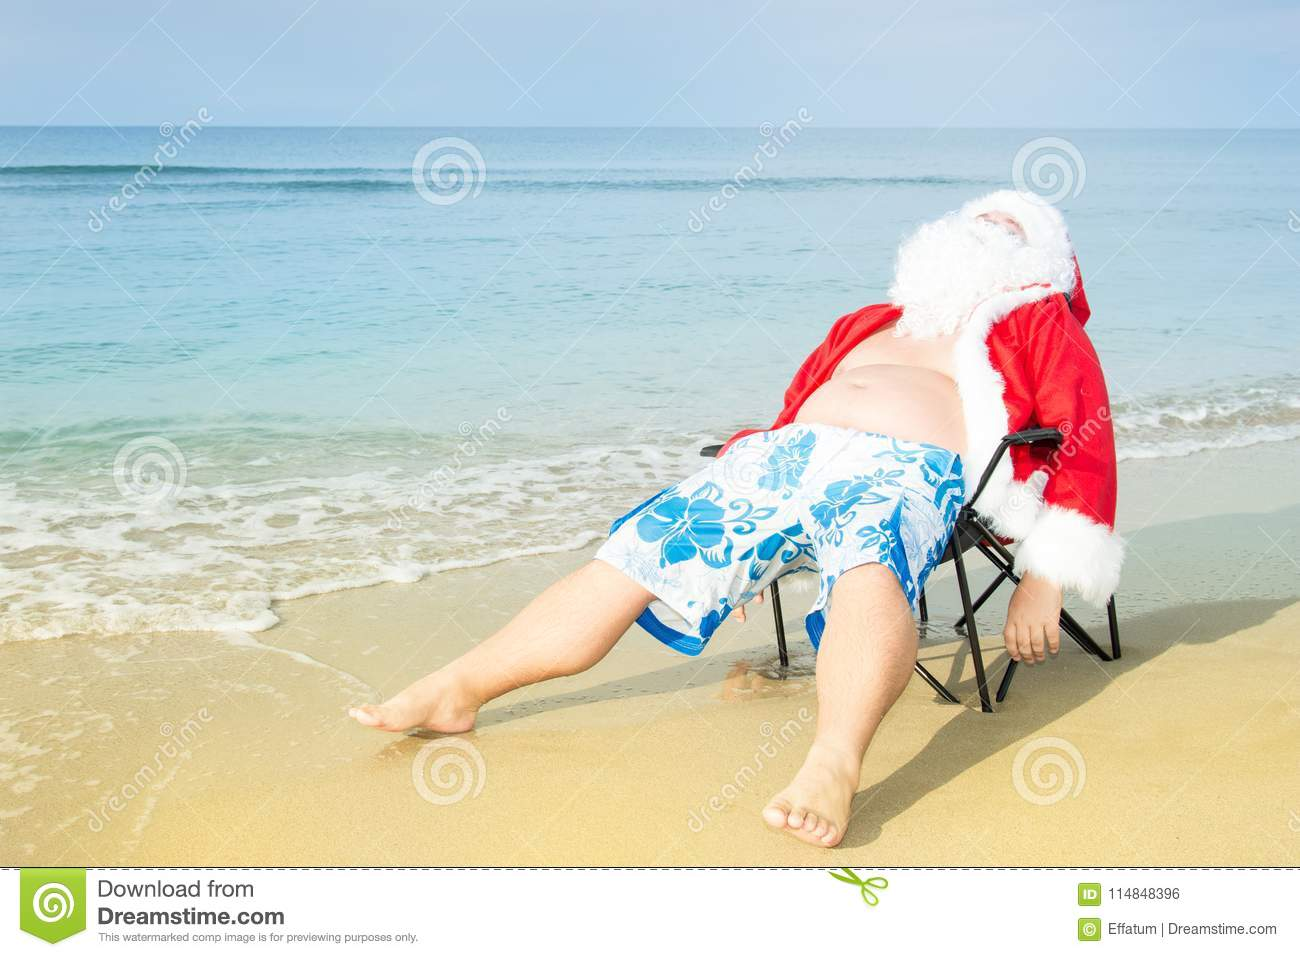 Funny Santa in shorts on the beach. Christmas in the tropics.